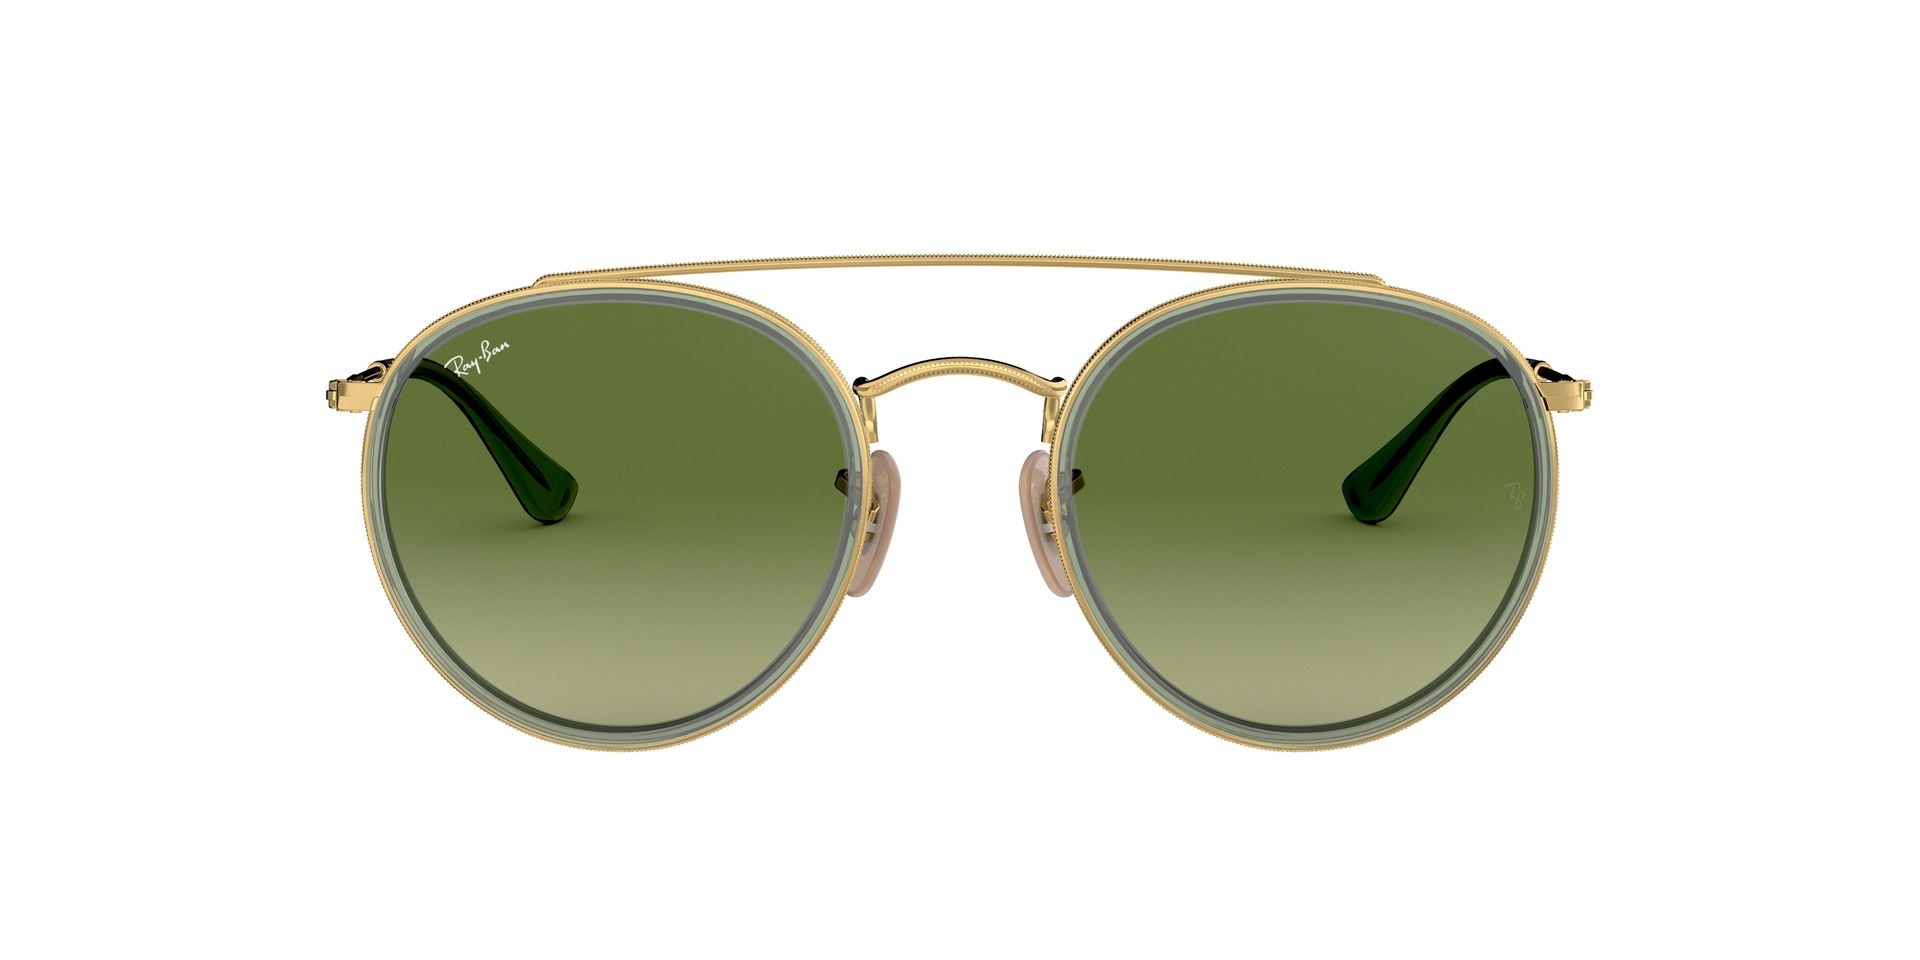 RAY-BAN ROUND DOUBLE BRIDGE RB 3647N 91224M-360